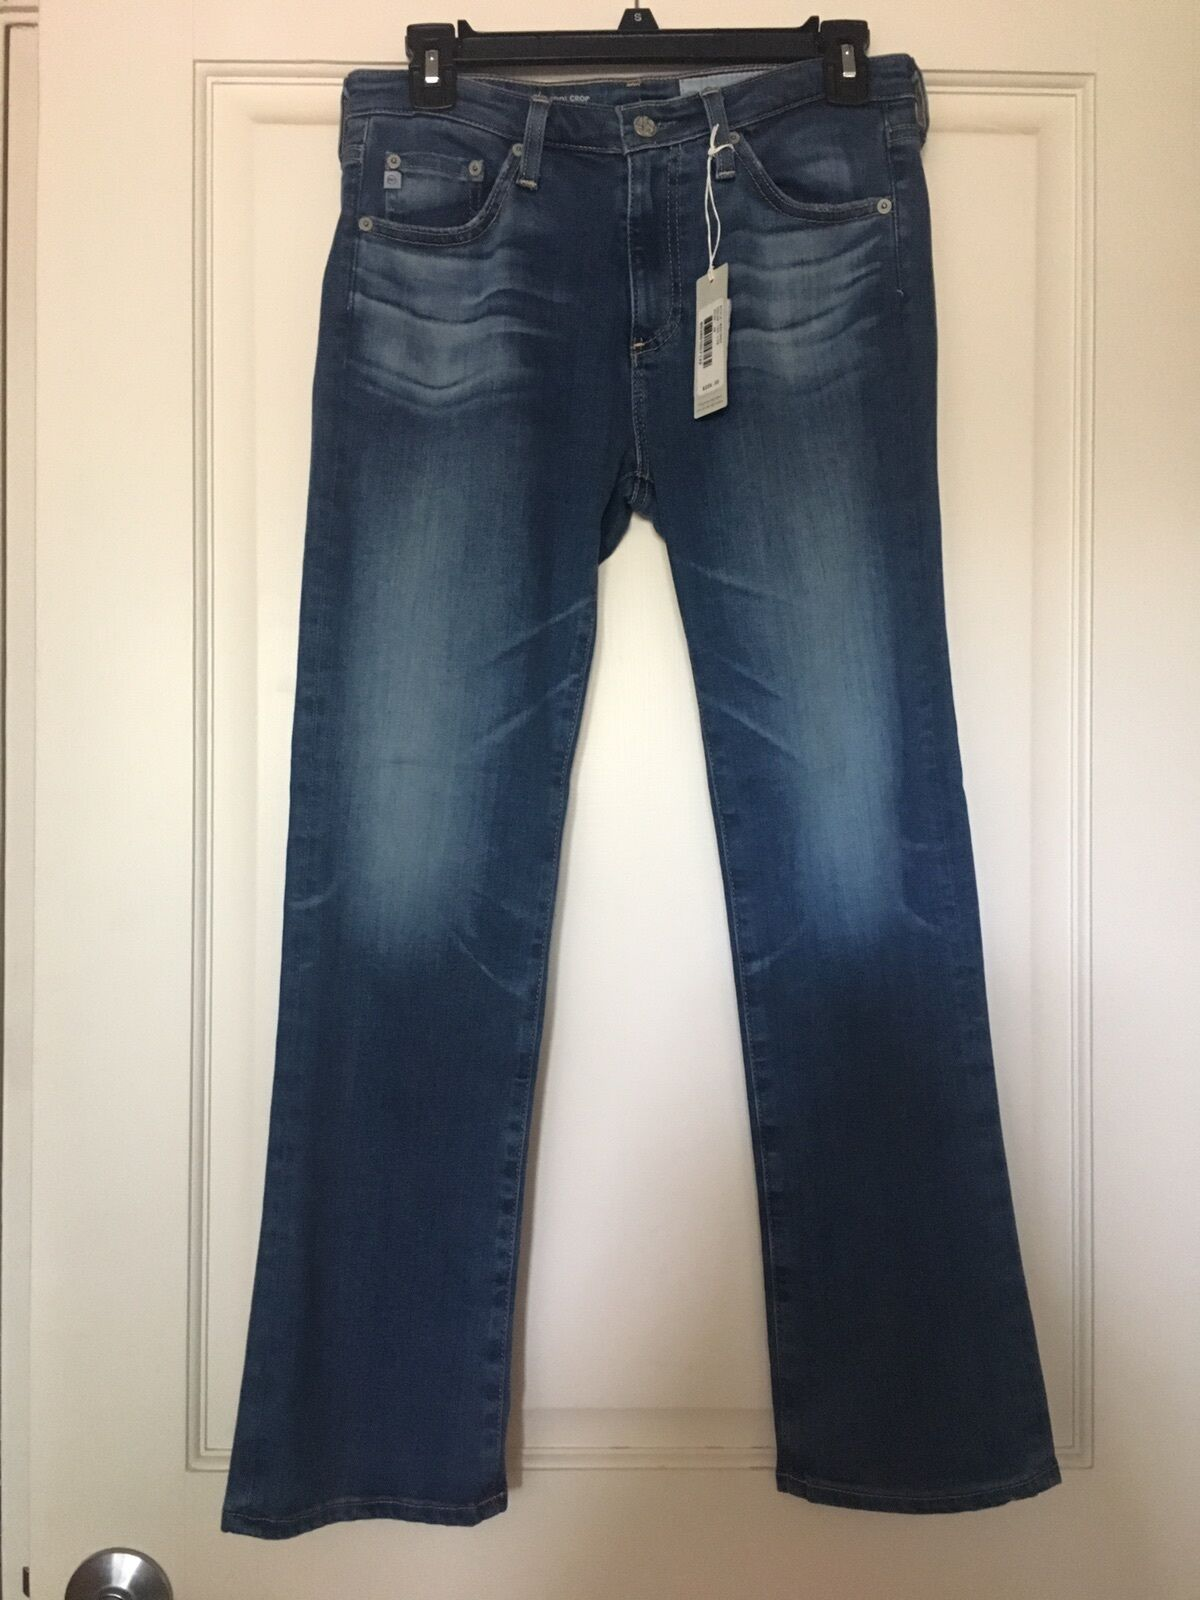 NWT AG Adriano goldschmied Denim Jeans Long Pant, Size 26, The Jodi Crop